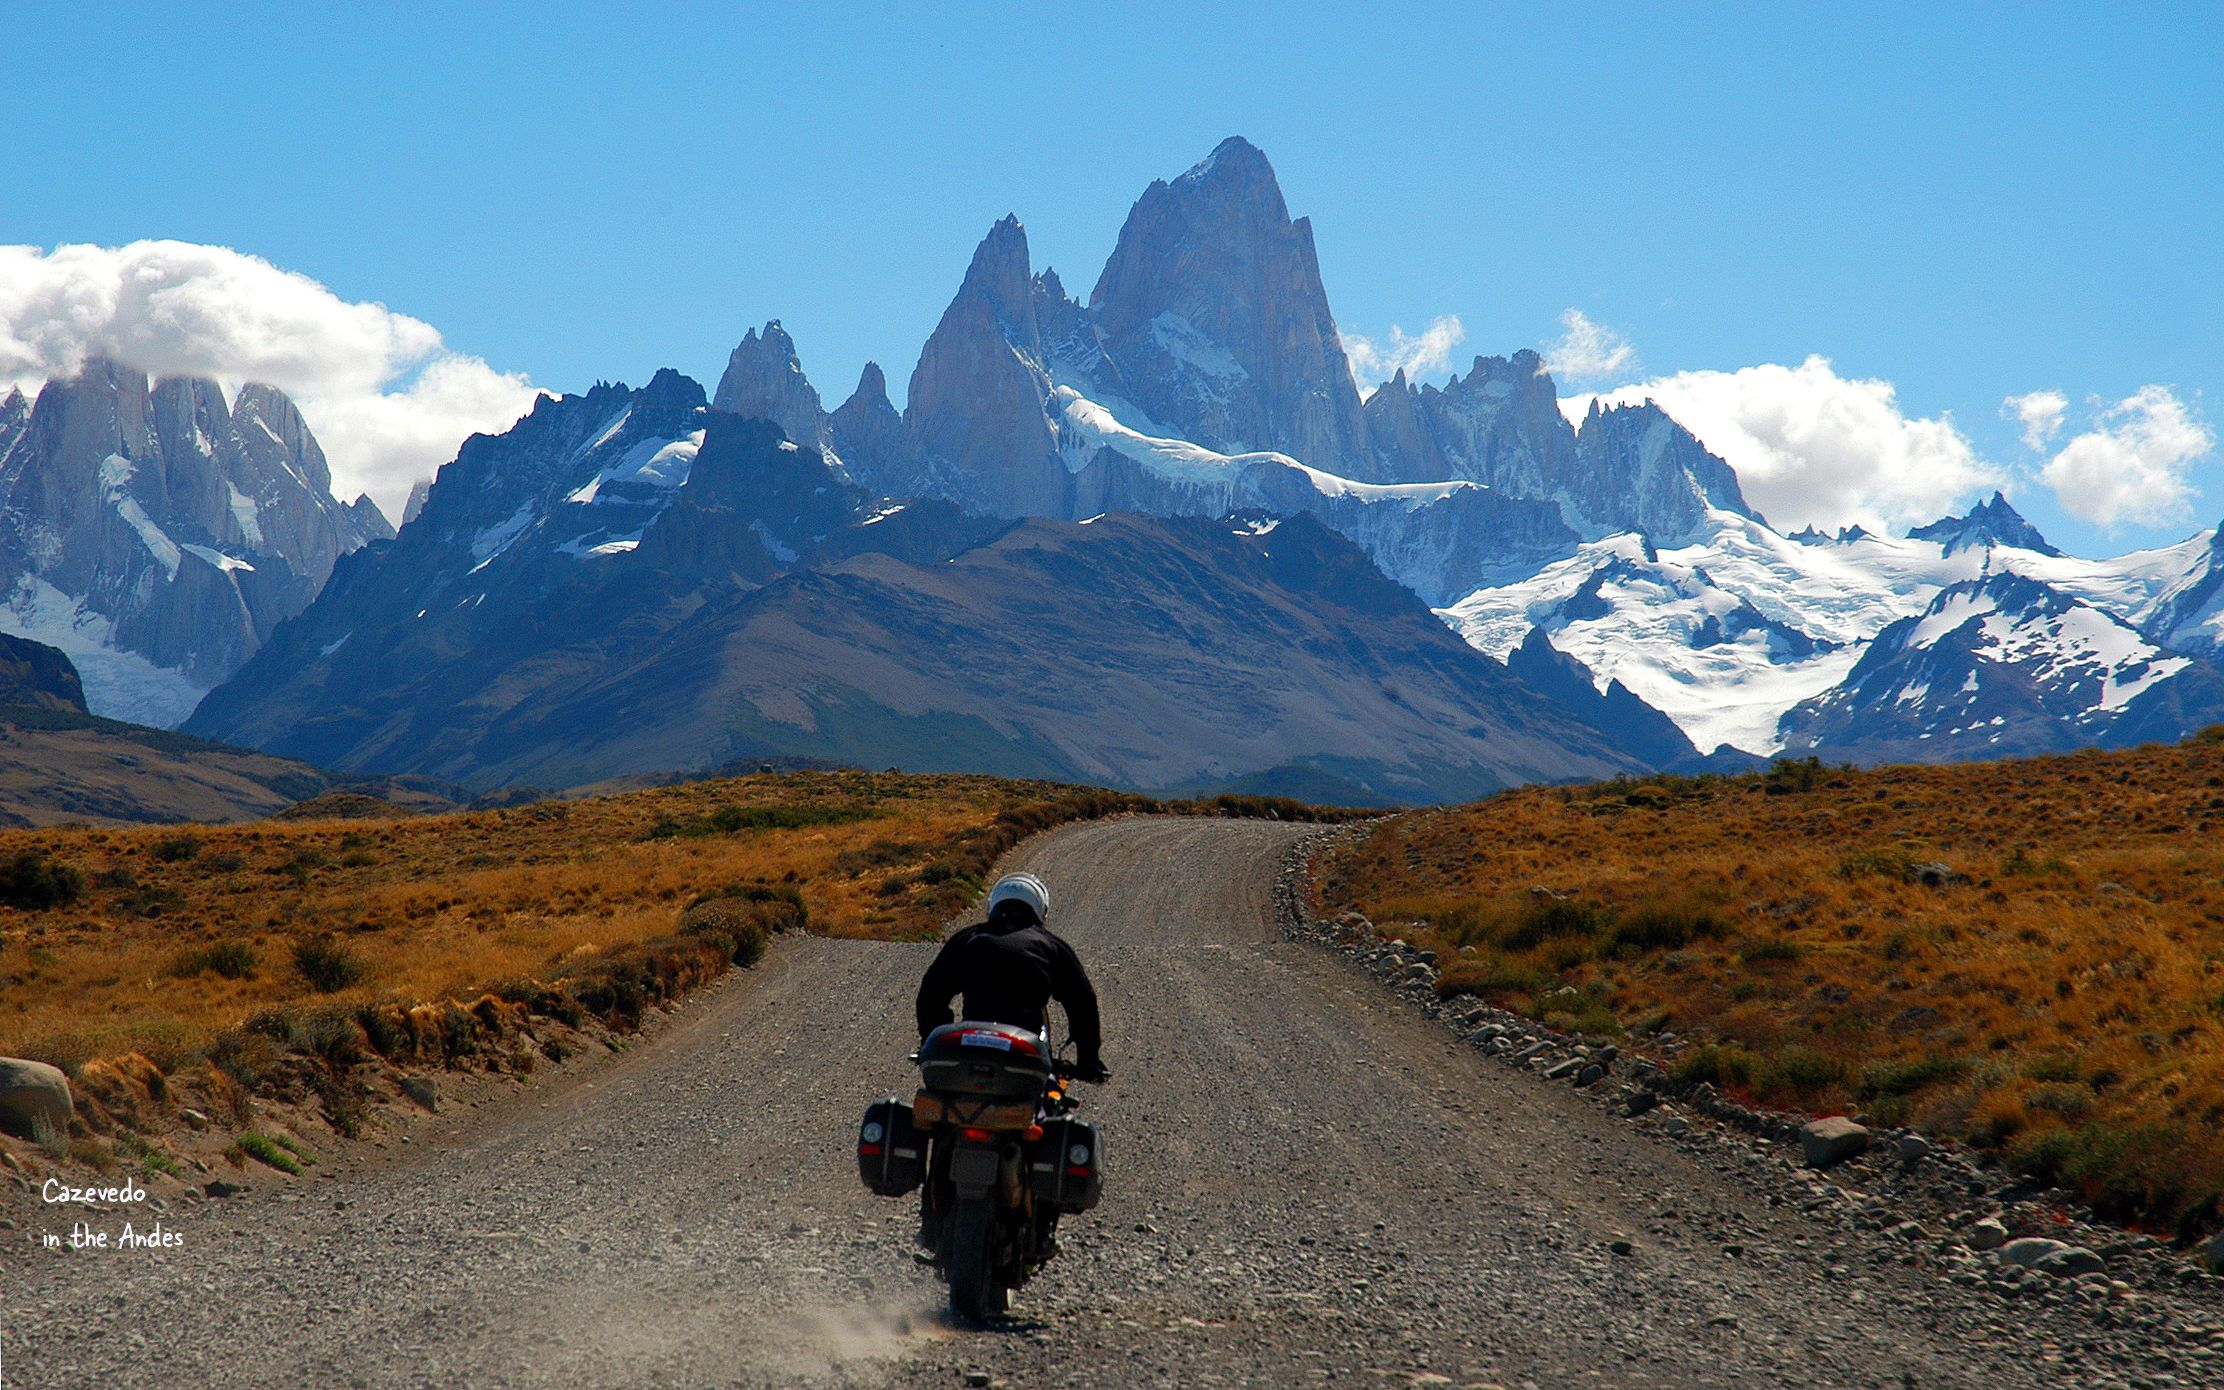 El Chalten Argentina What A Great Place One Of The Most Beautiful Places I 39 Ve Ridden